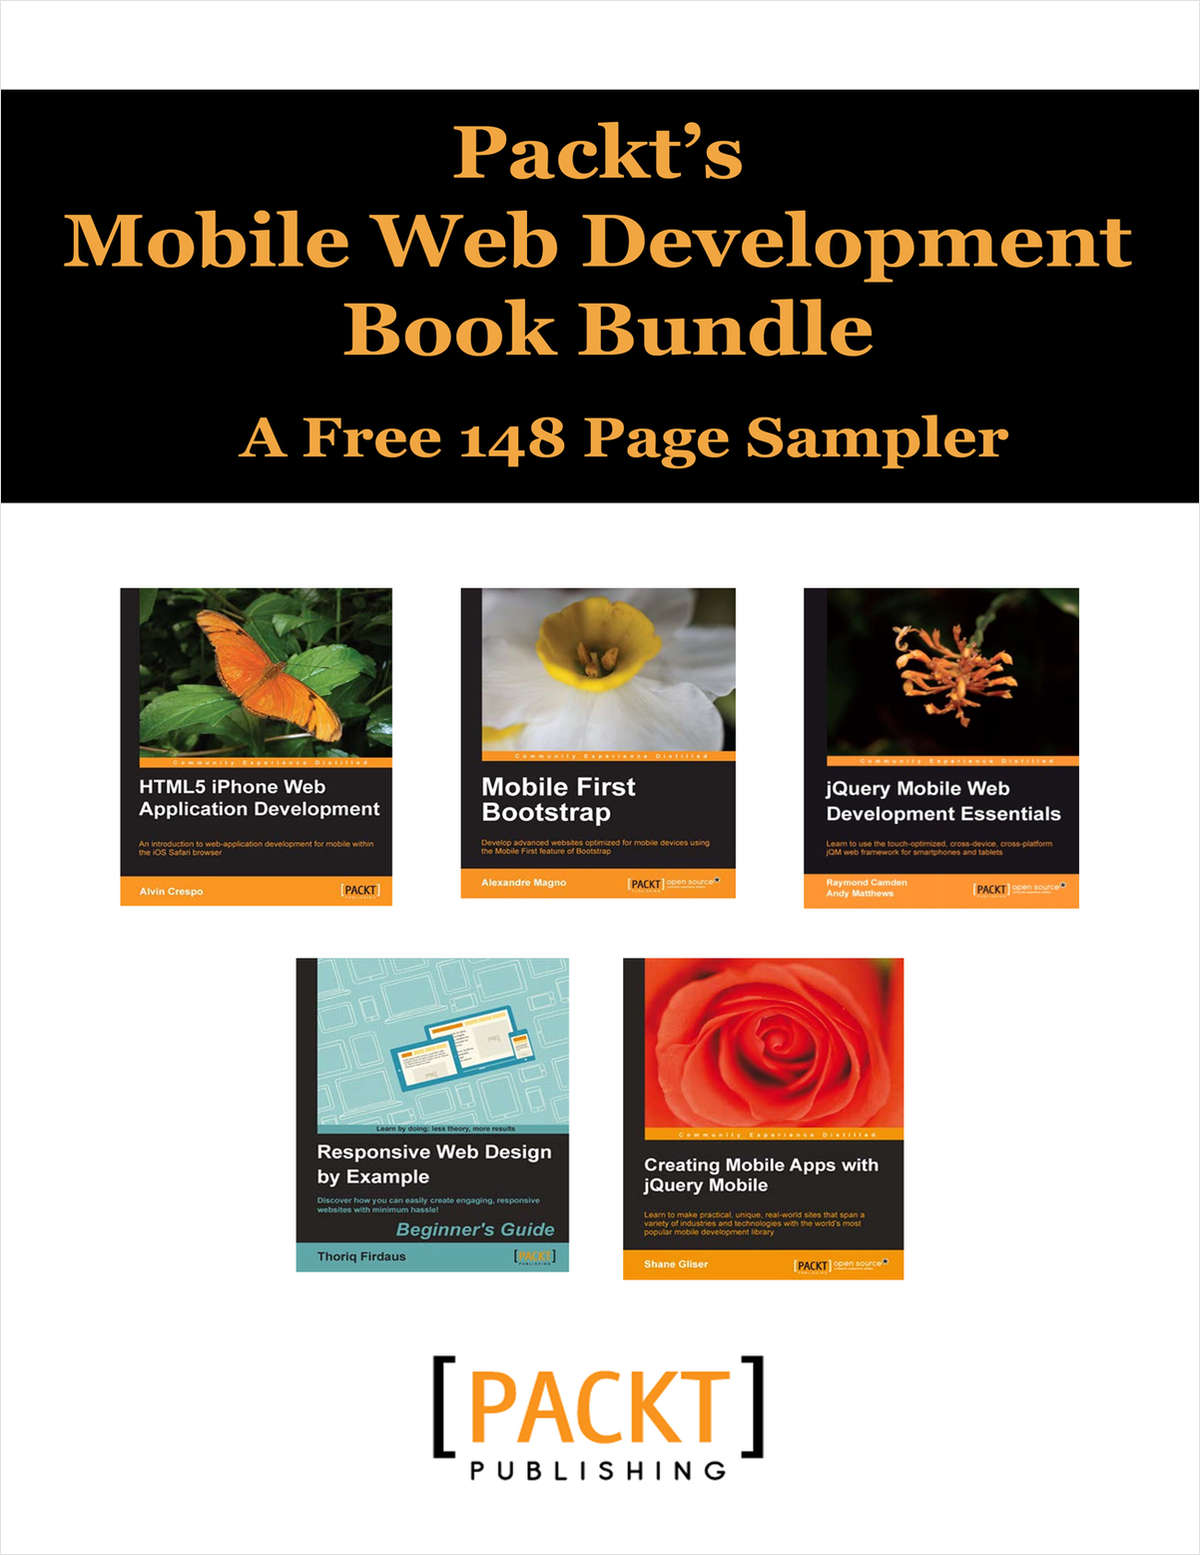 Packt's Mobile Web Development Book Bundle -- A Free 148 Page Sampler